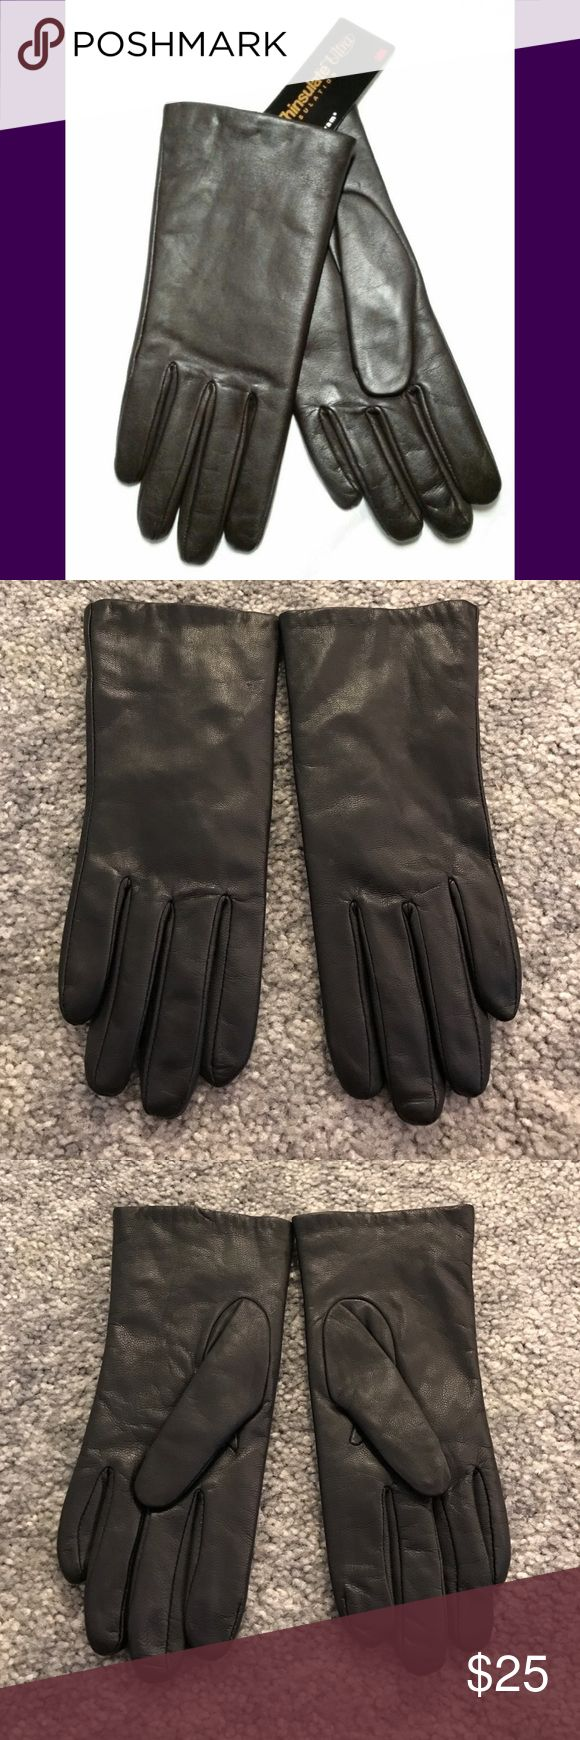 Isotoner womens leather gloves with fleece lining - Isotoner Leather Thinsulate Lined Gloves Size 7 5